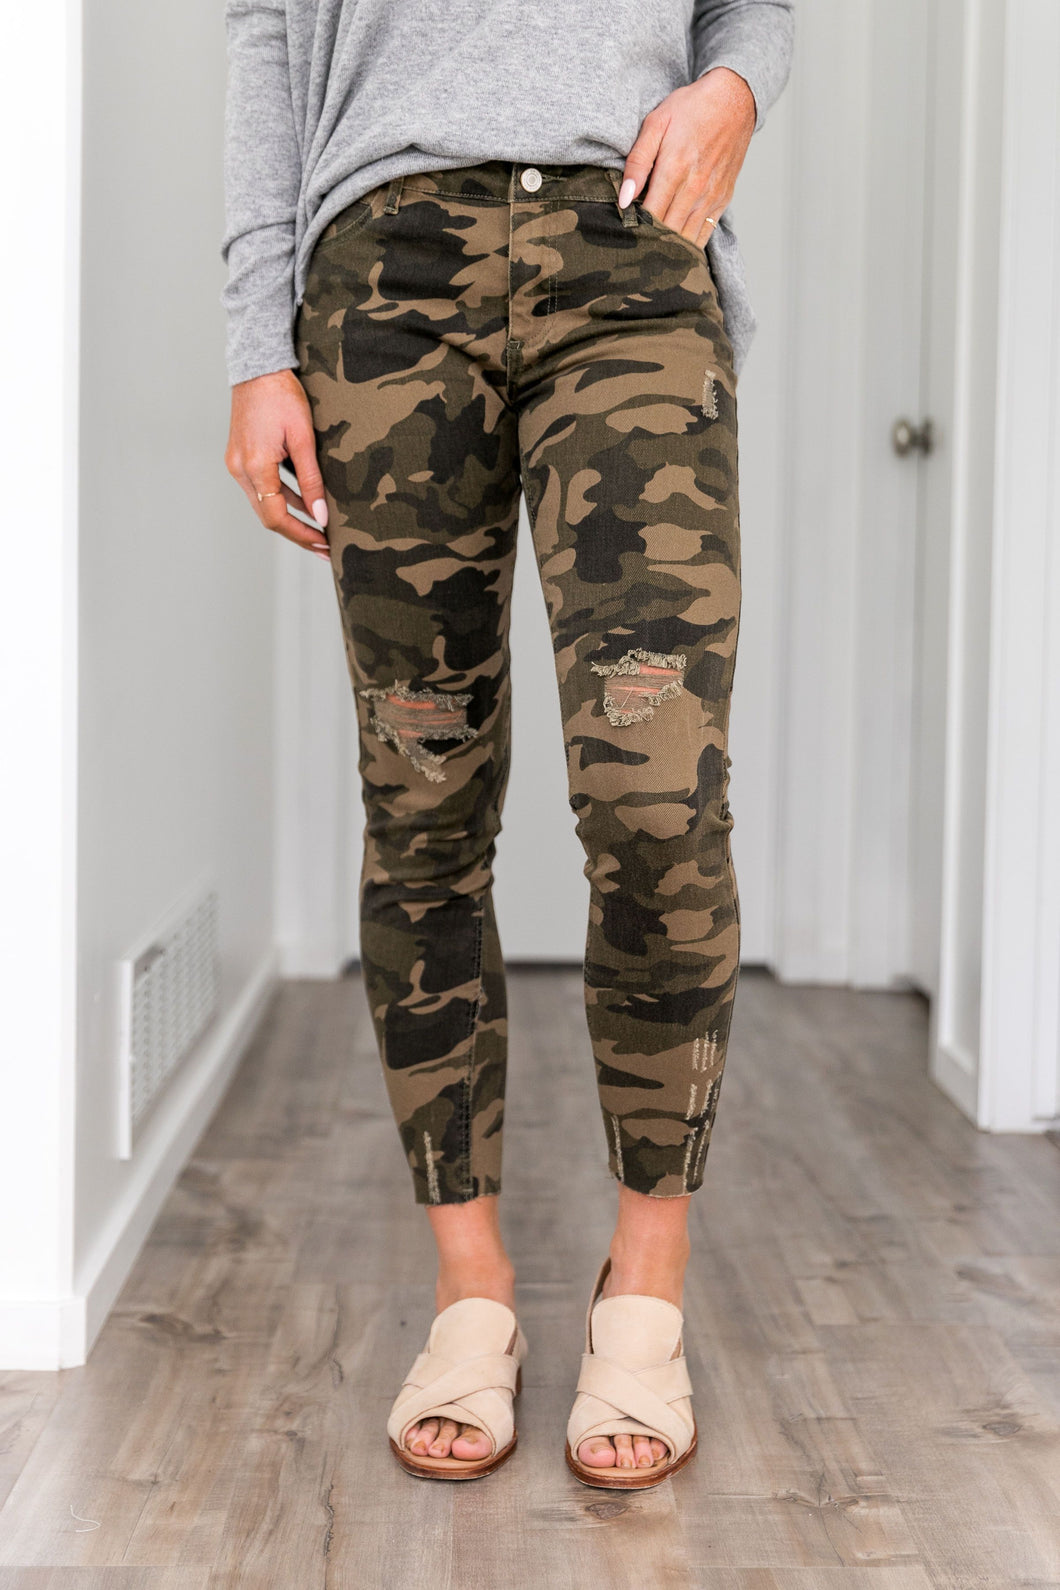 Distressed Mid Rise Camo Jeans - Boho Valley Boutique